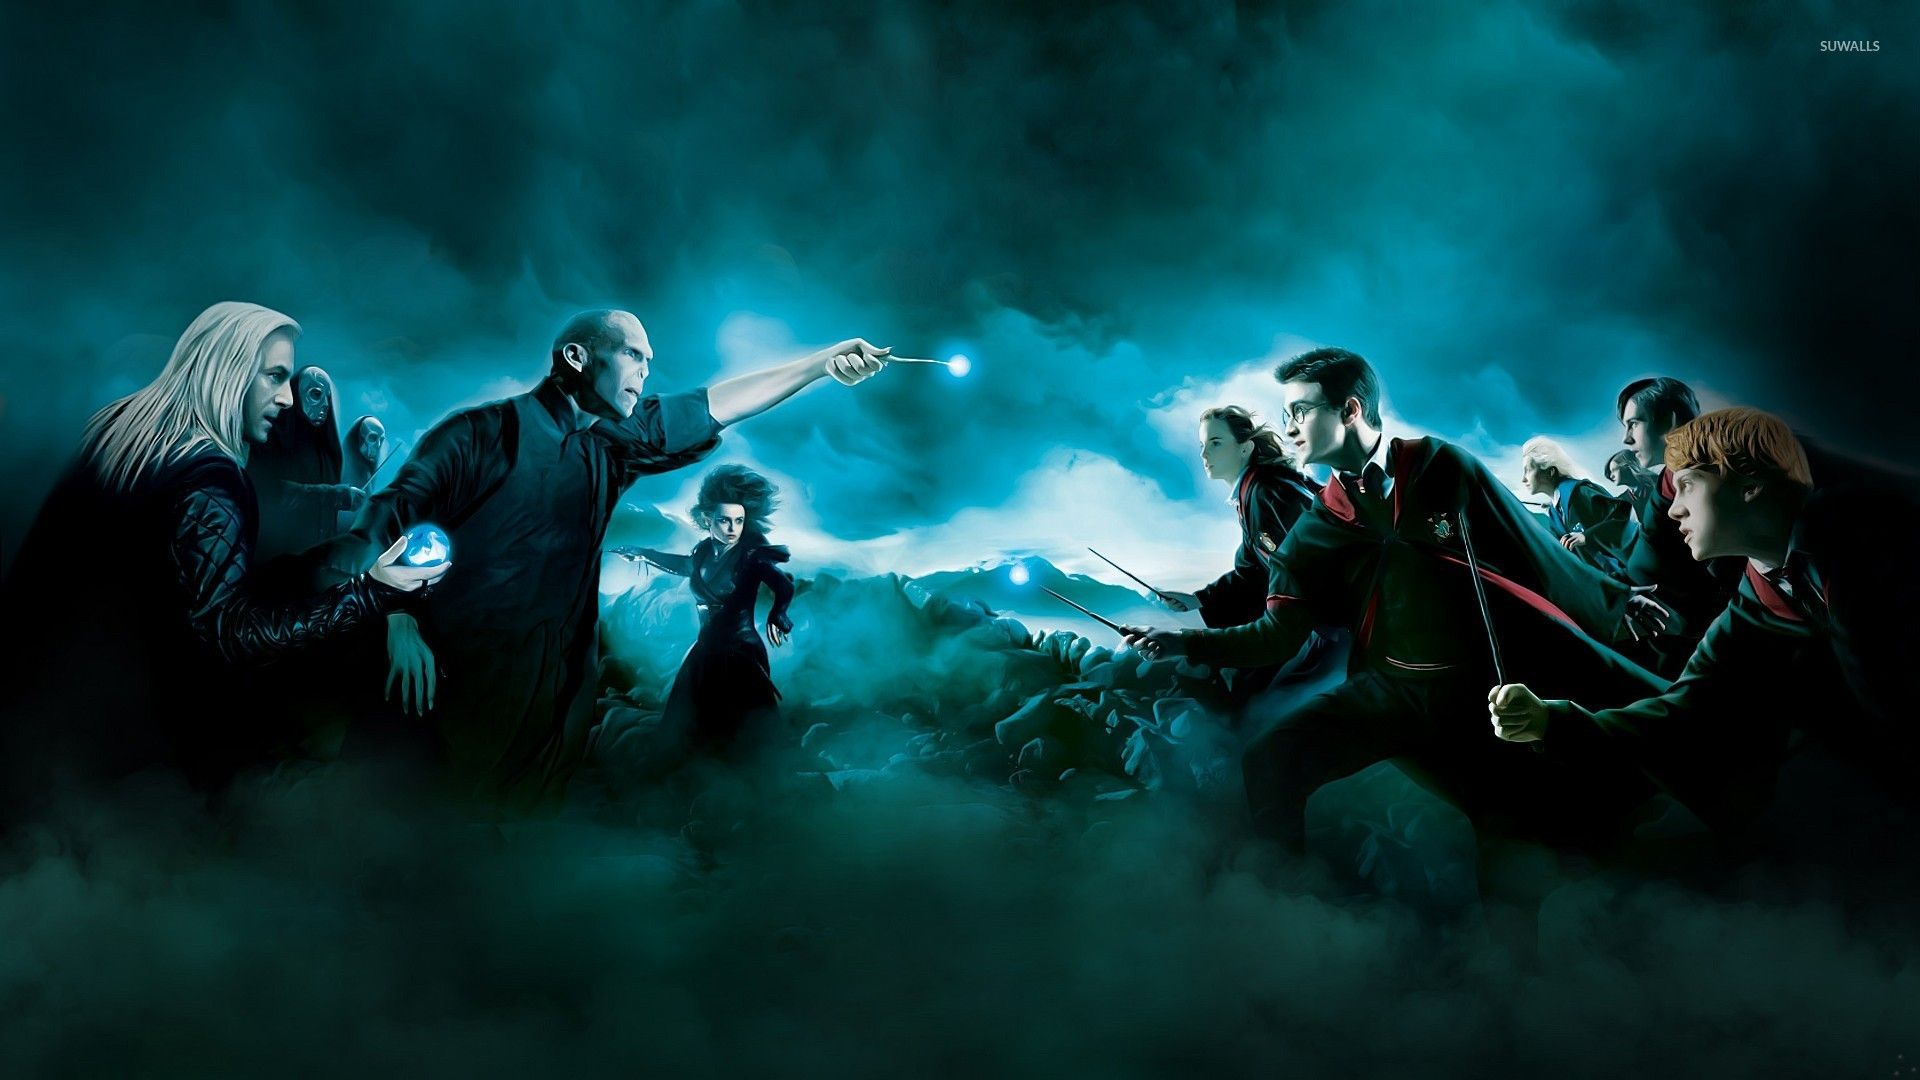 Harry Potter And The Deathly Hallows Hd Desktop Wallpaper Harry Potter Vs Voldemort Harry Potter Wiki Harry Potter Tumblr